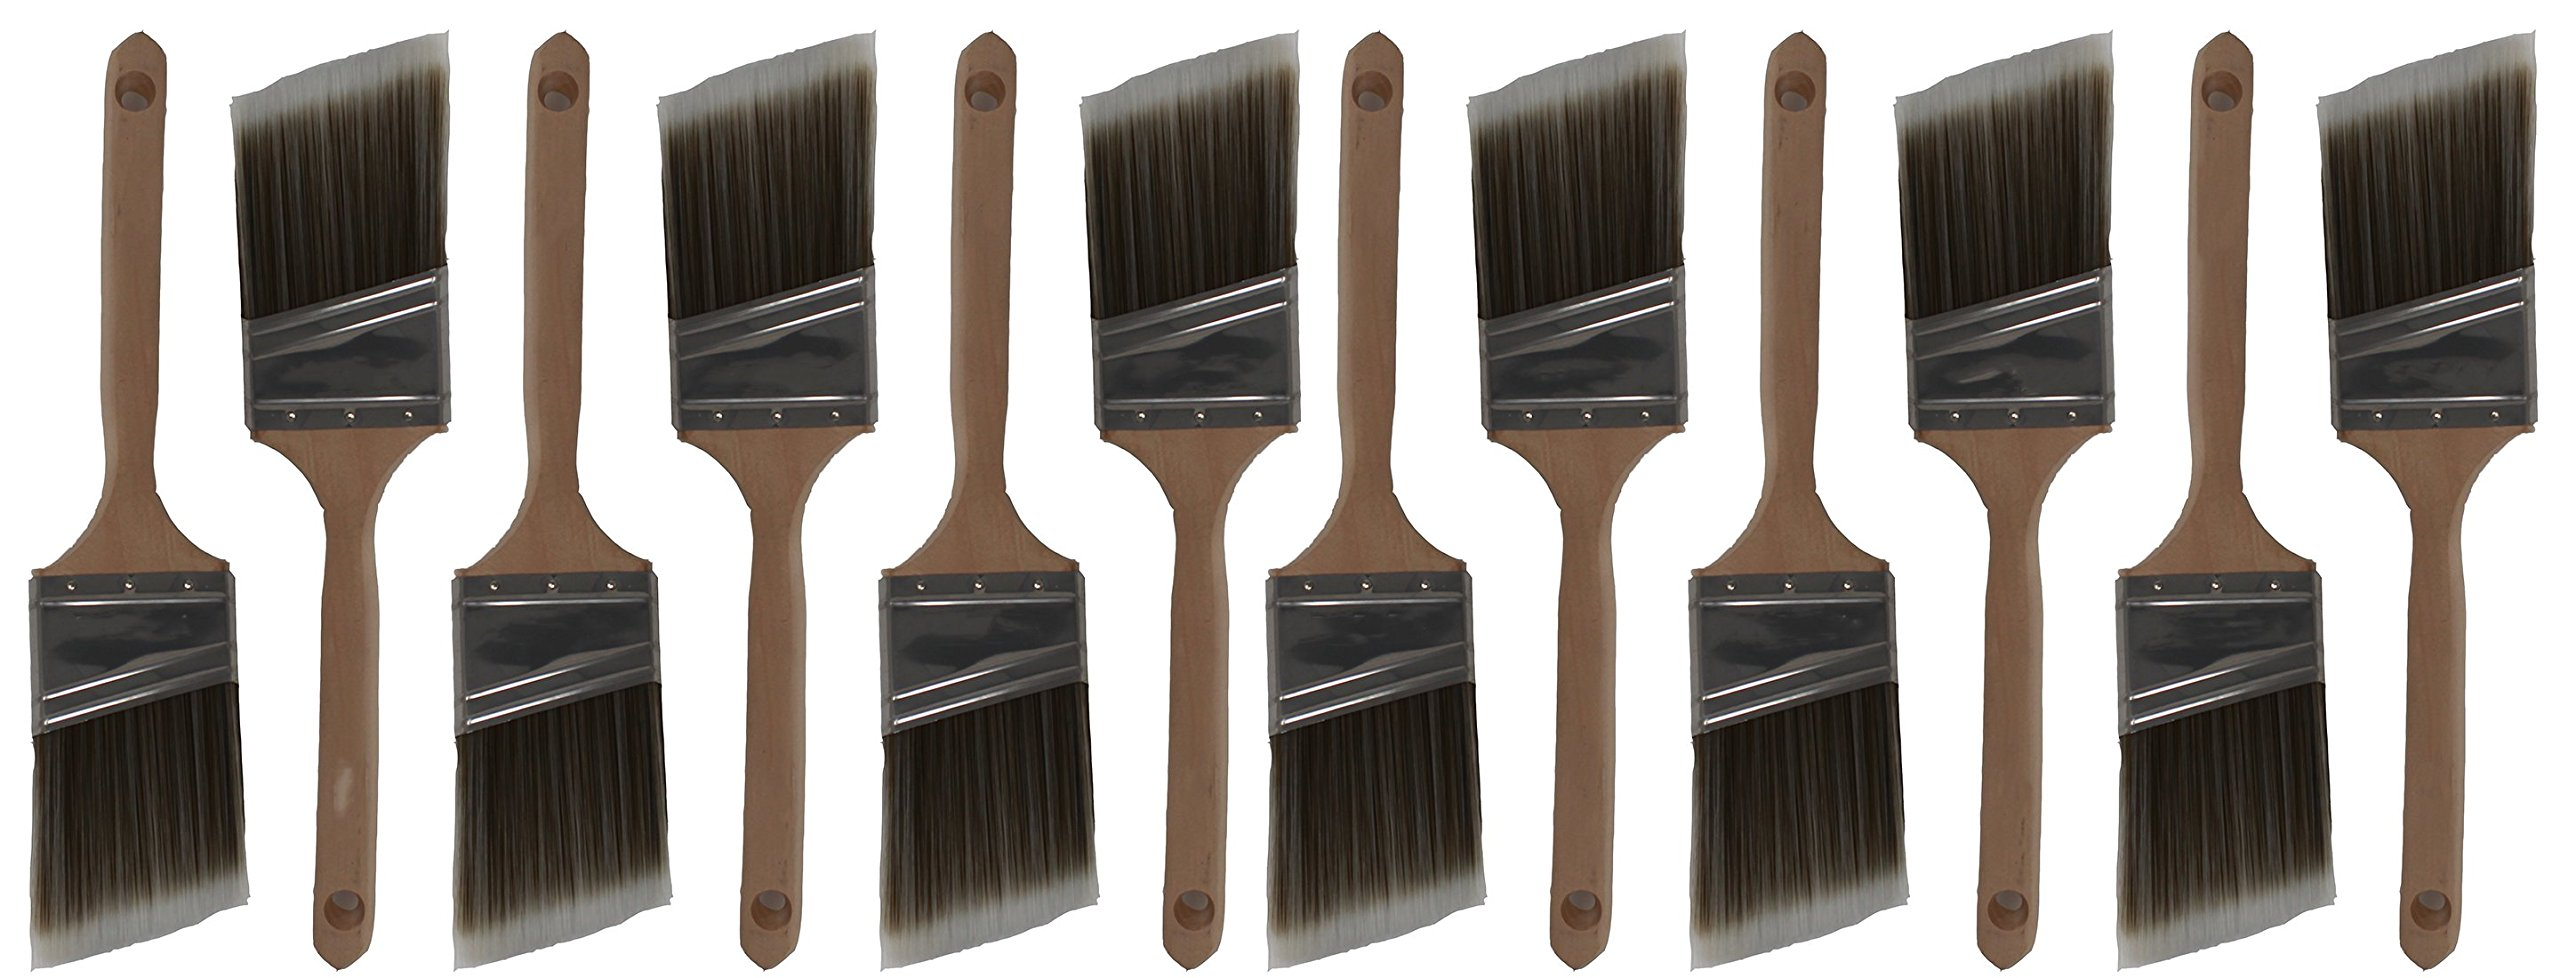 Angle Premium Wall/Trim House Paint Brush Set Great for Professional Painter And Home Owners Painting Brushes For Cabinet Decks Fences Interior Exterior & Commercial Paintbrush. (12Ea 2.5A)